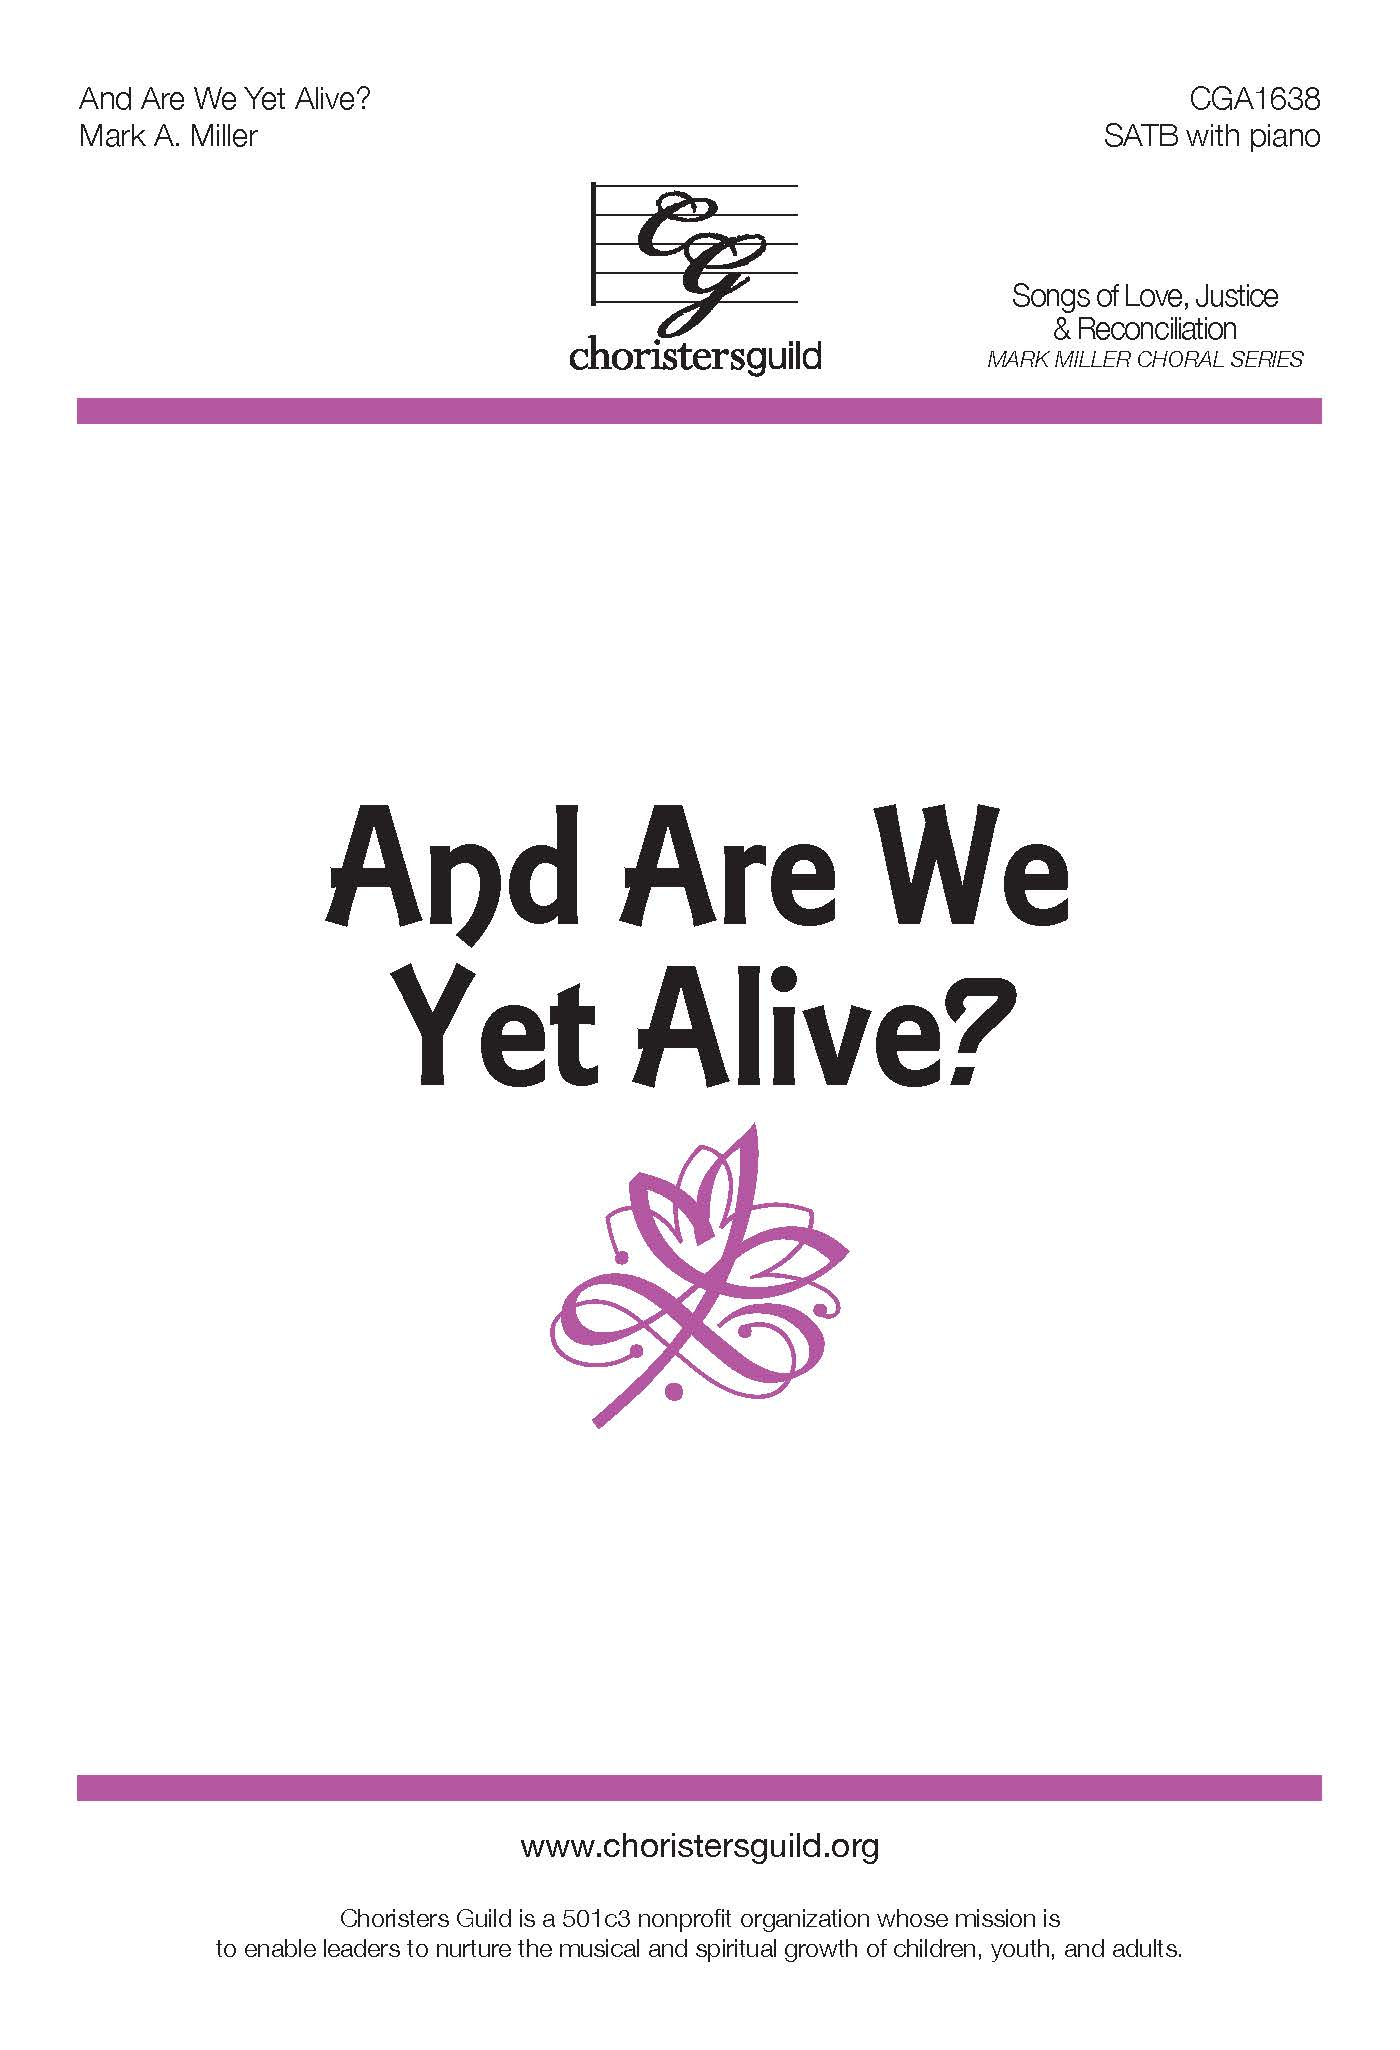 And Are We Yet Alive? - SATB